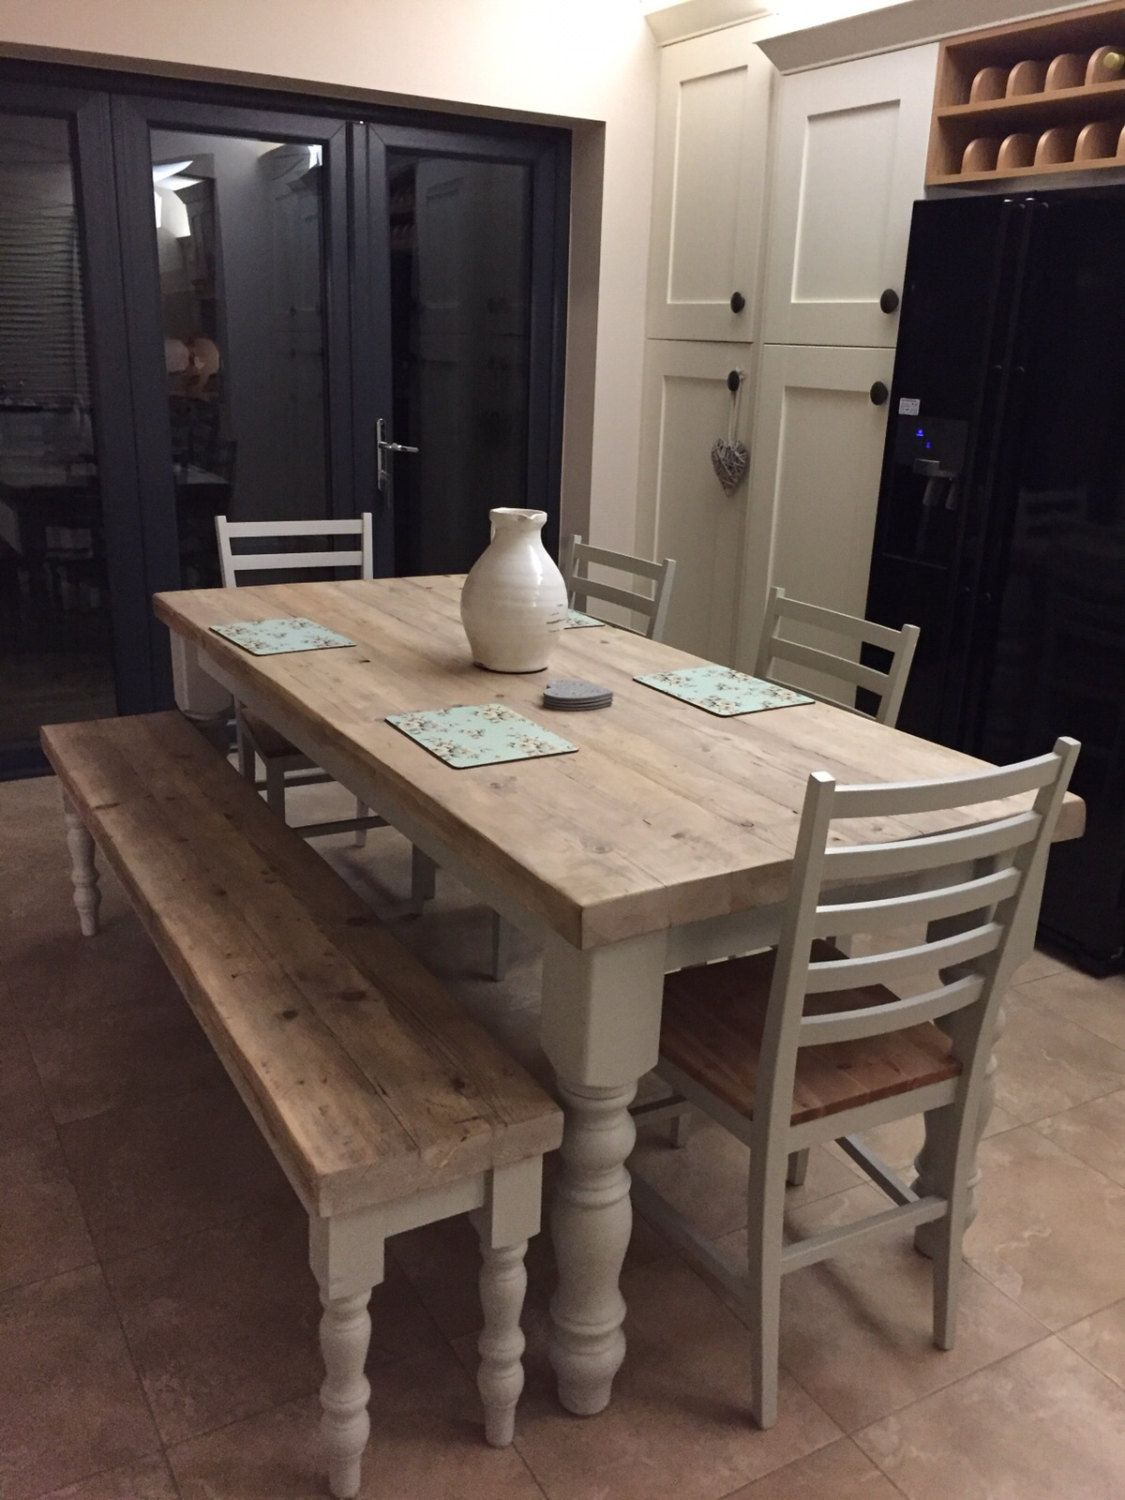 Farmhouse Dining Table With Reclaimed Wood Top And Bench Made To - Farmhouse table restaurant